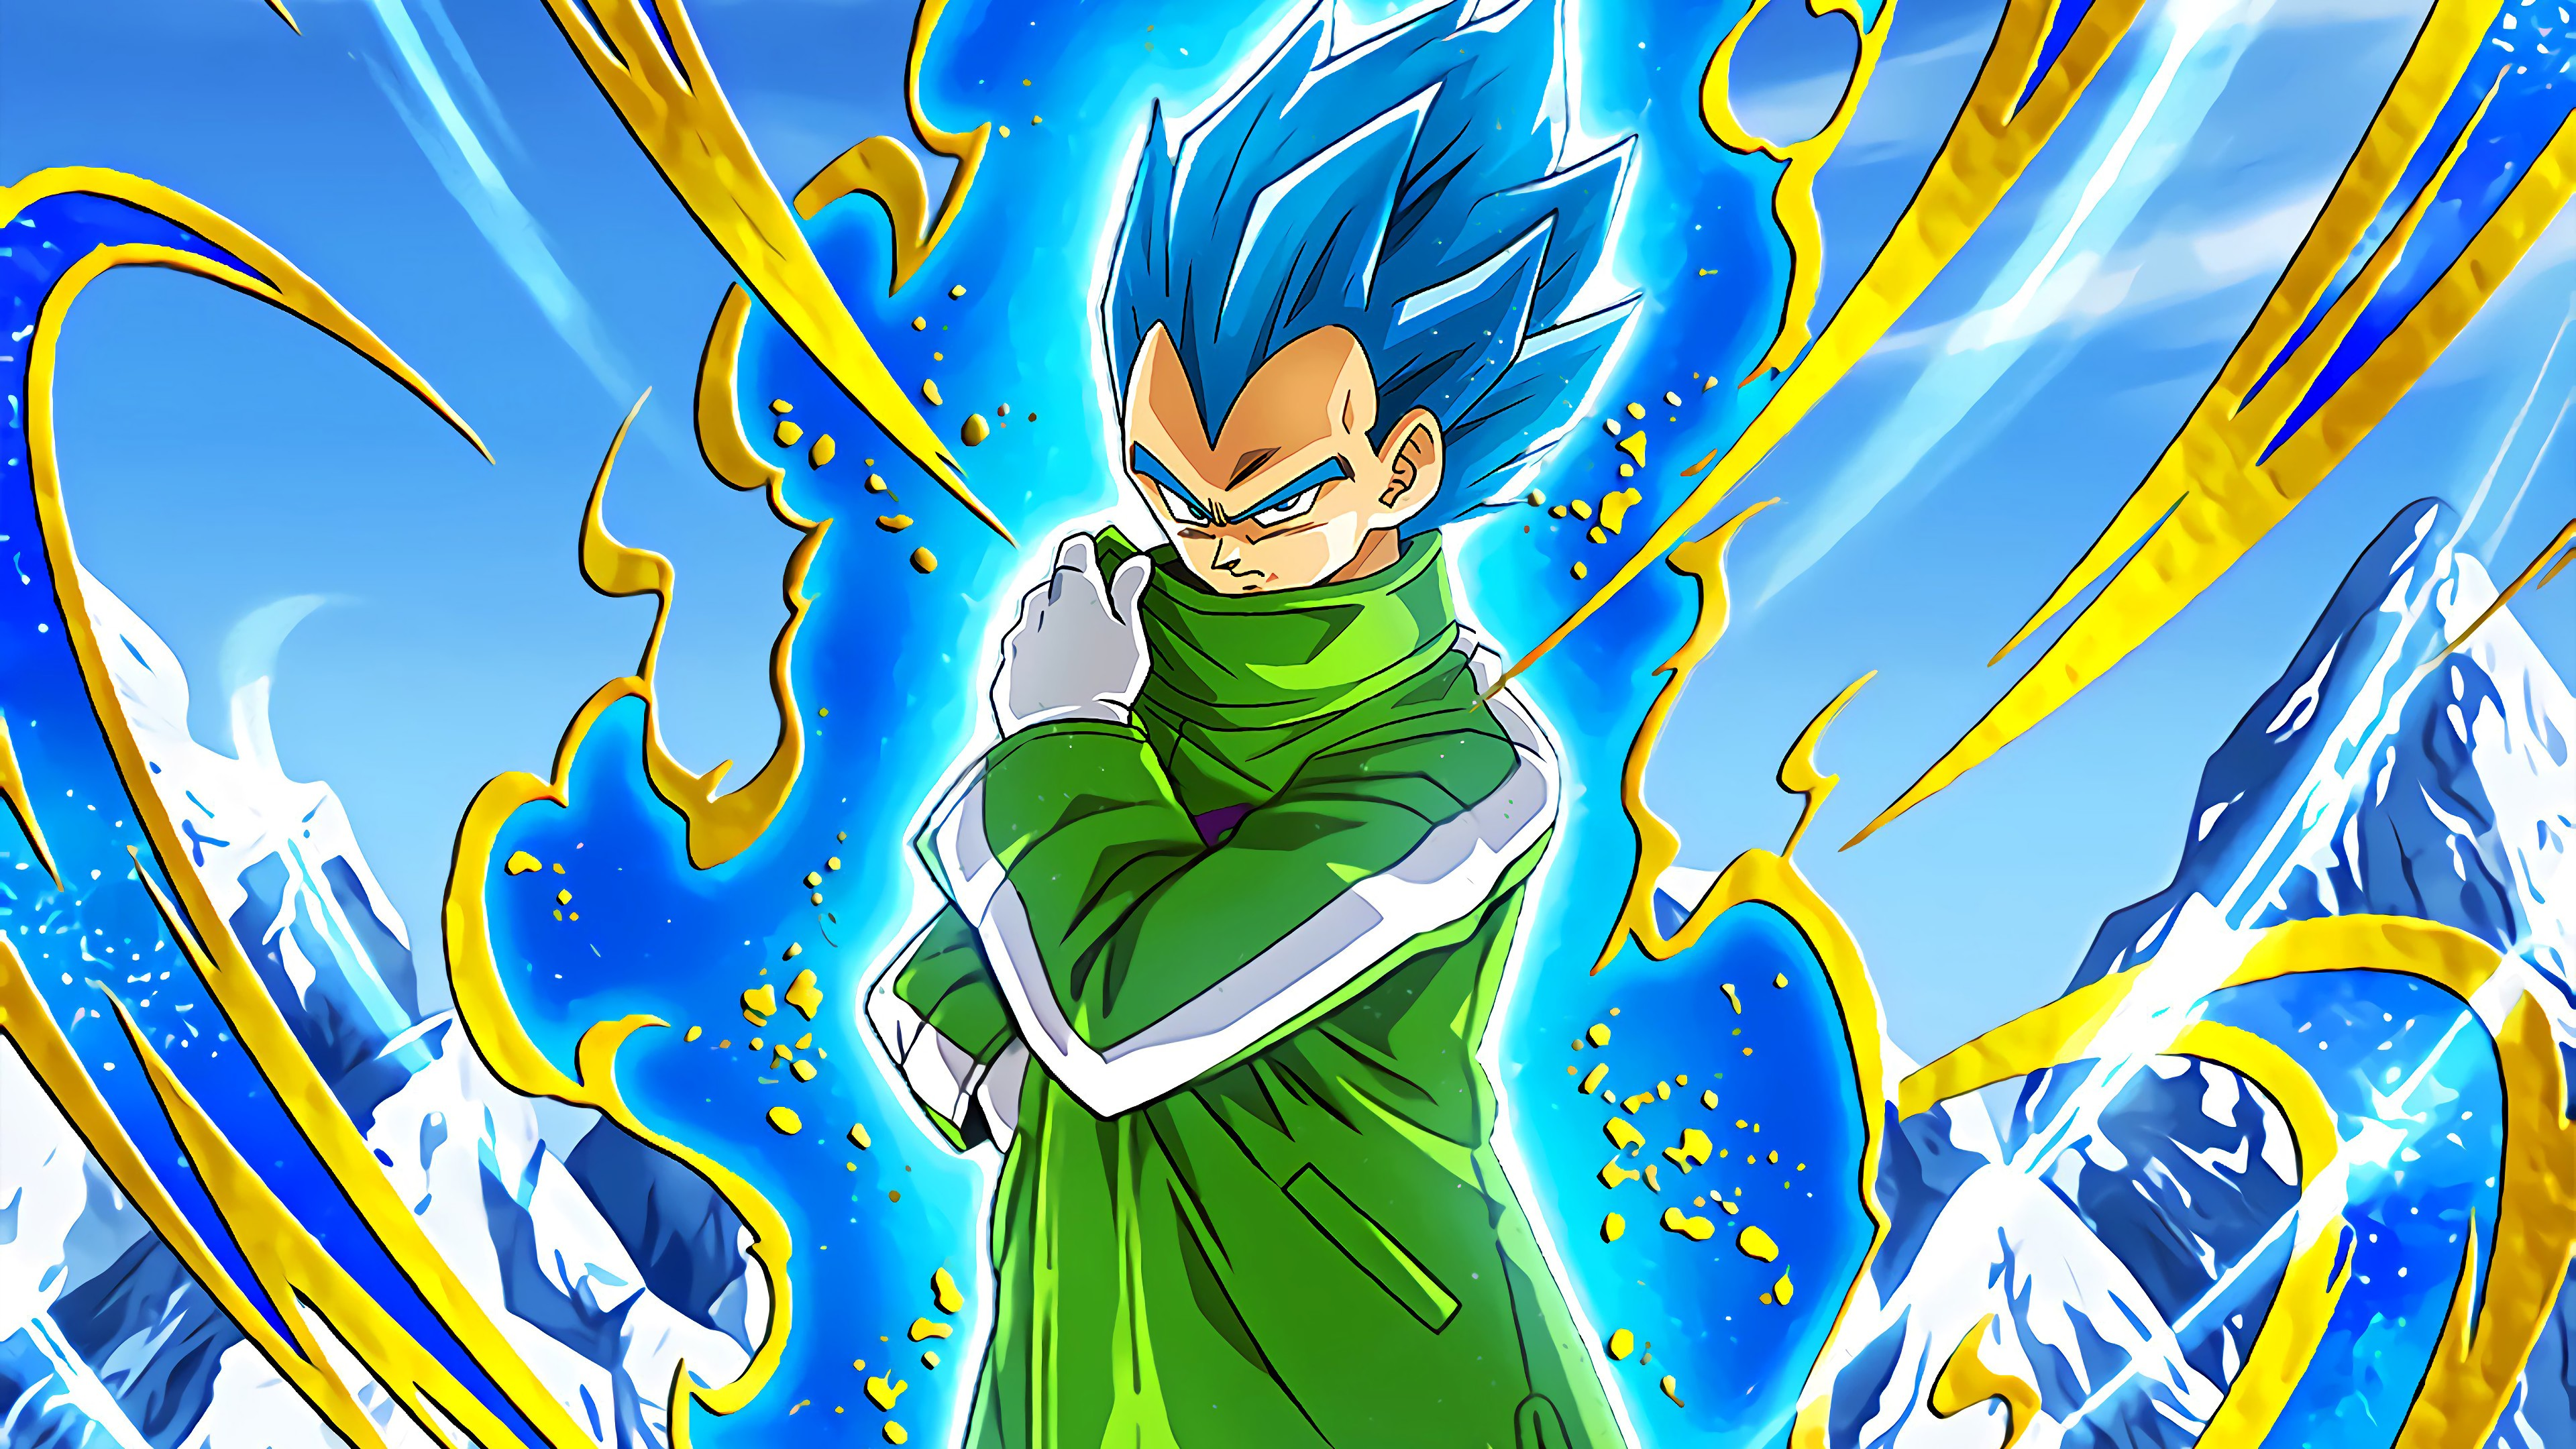 Super Saiyan Blue Vegeta Dragon Ball Super Anime Wallpaper